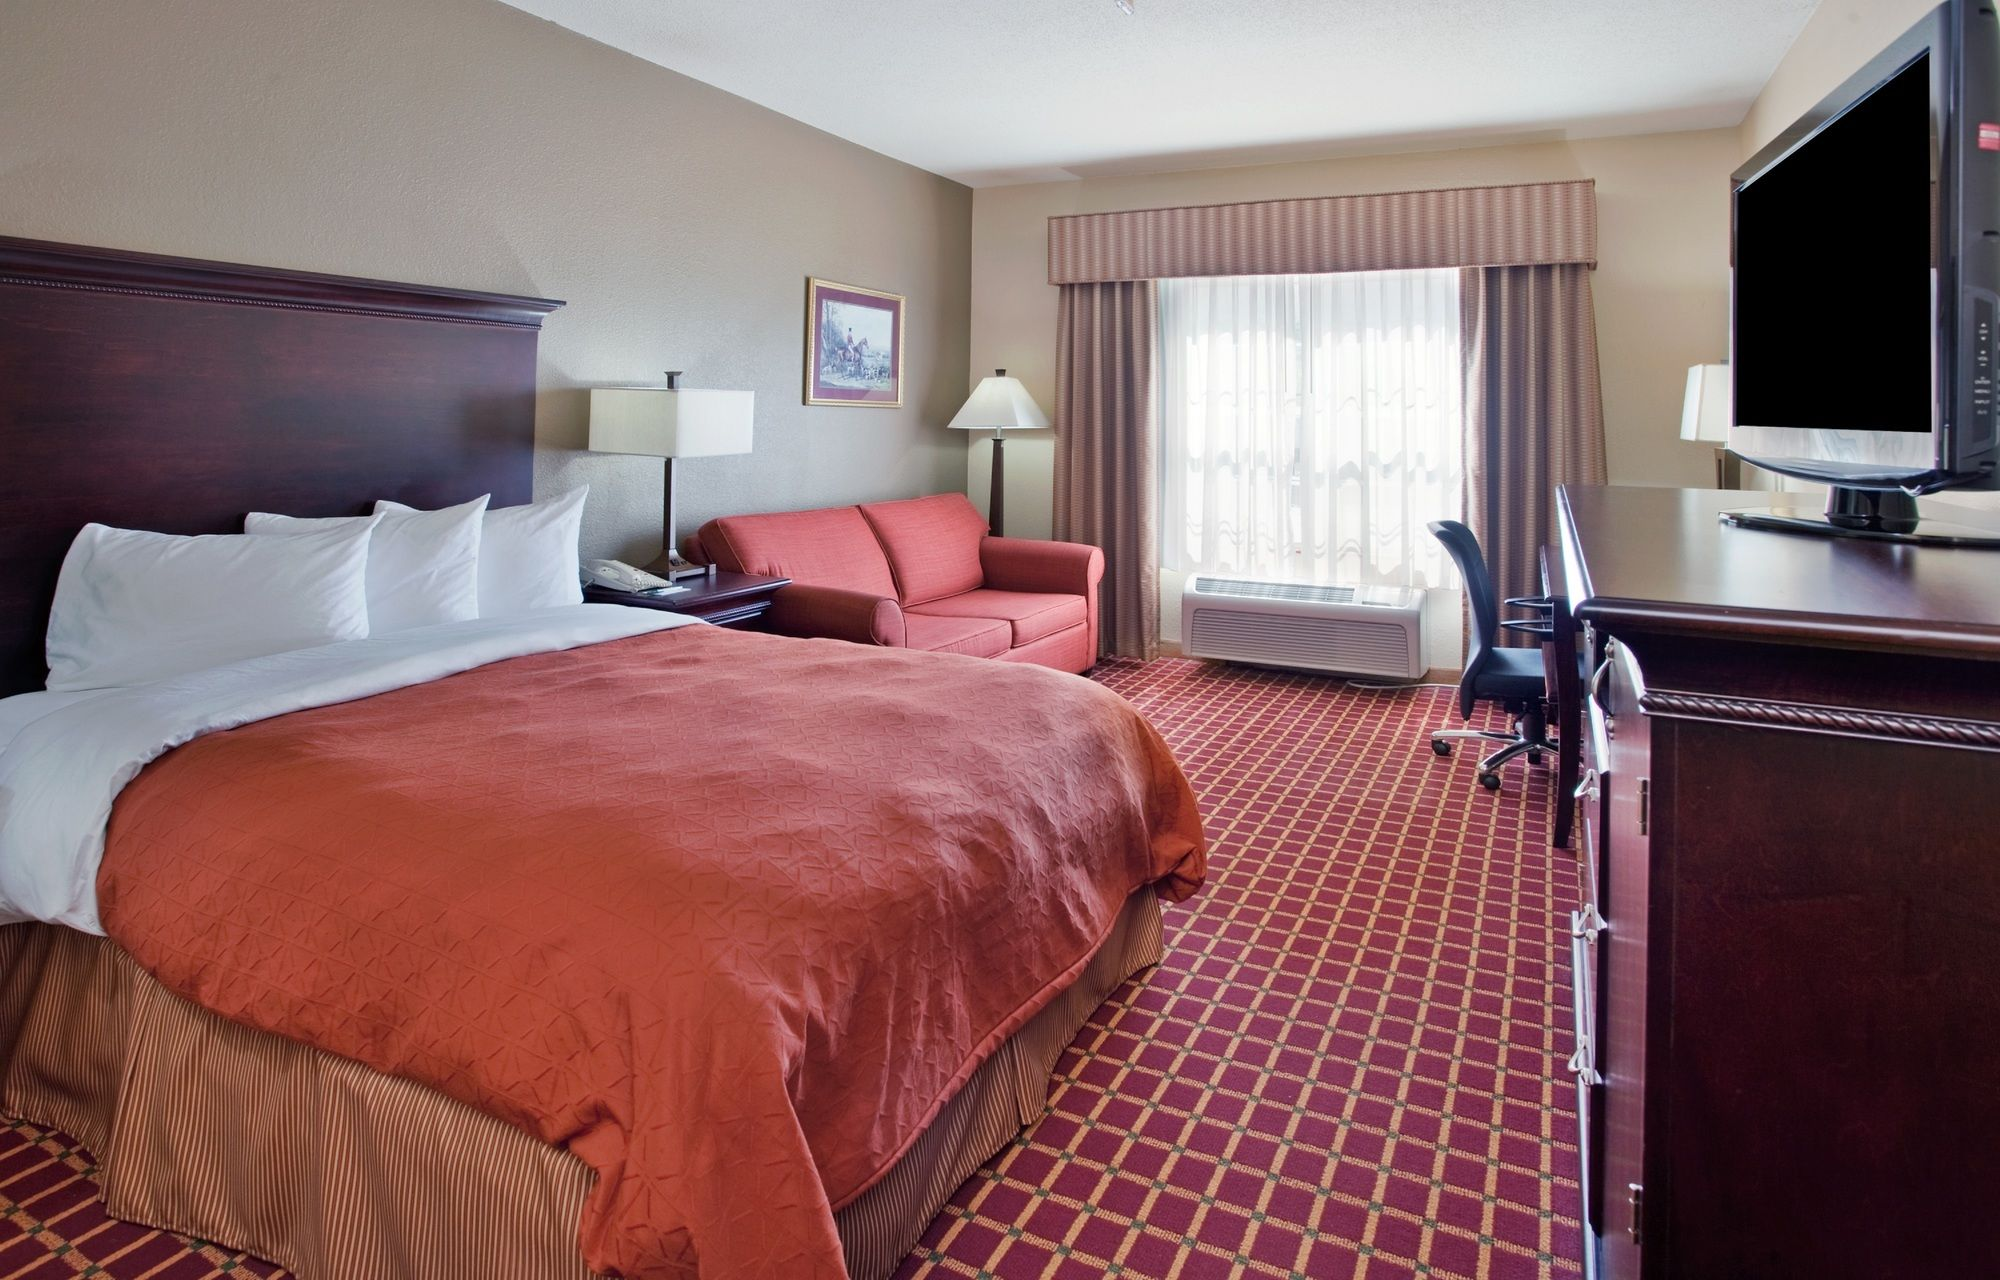 Country Inn & Suites in Columbia, SC